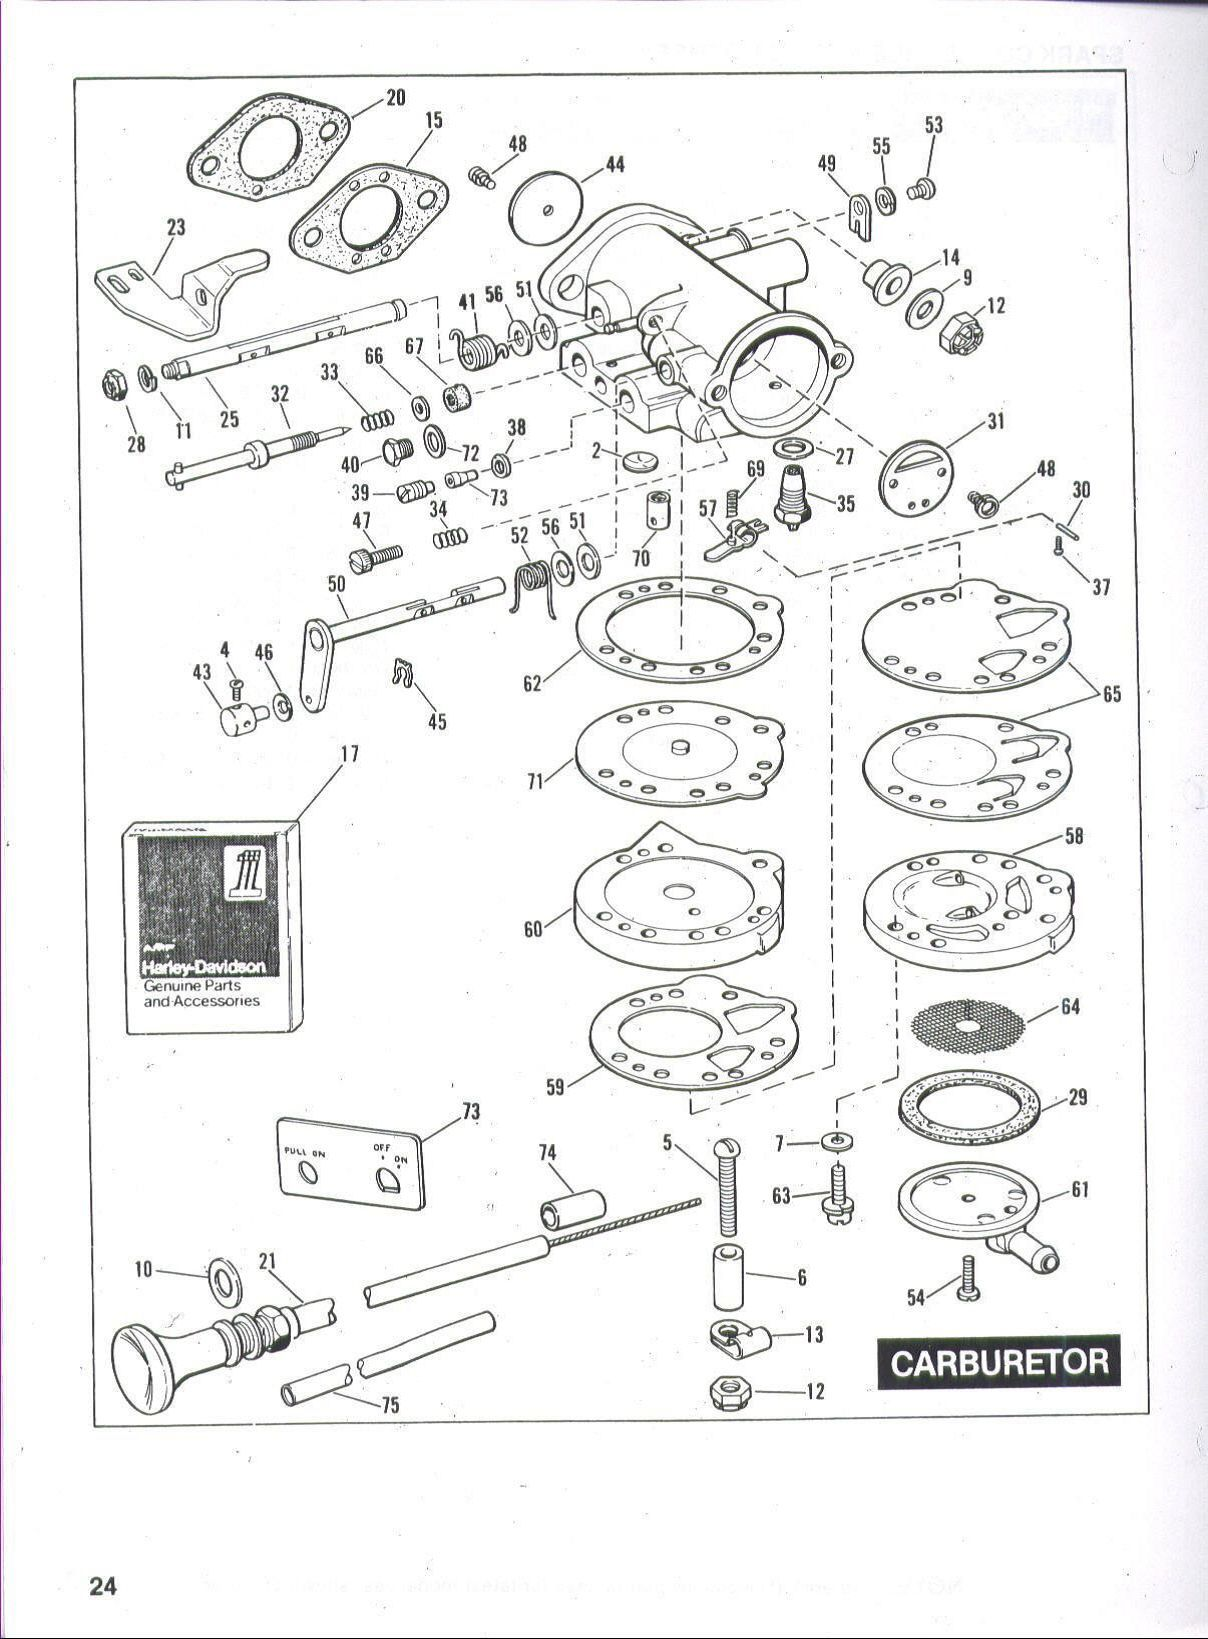 small resolution of harley davidson carburetor diagram wiring diagram week 94 harley carburetor diagram